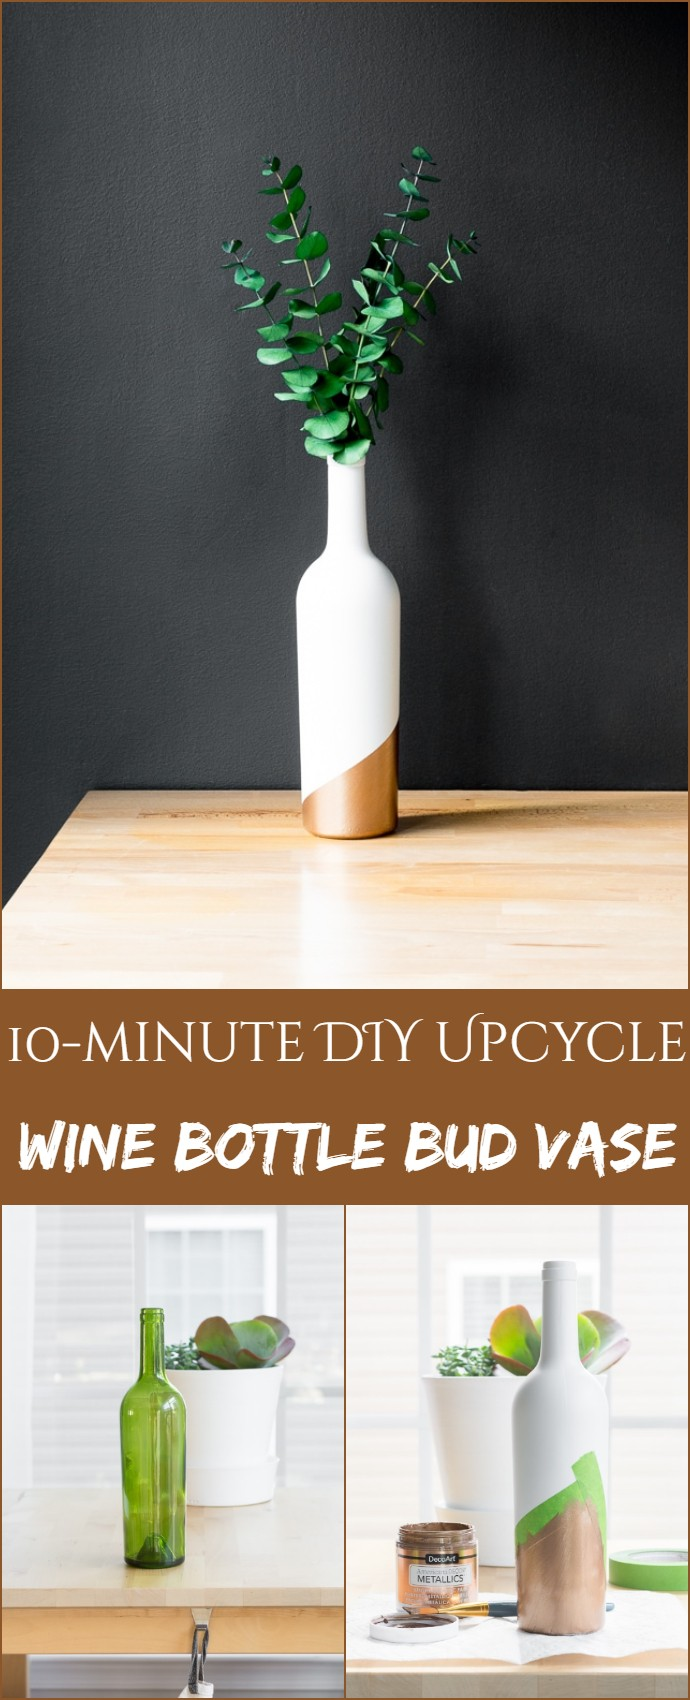 10-minute DIY Upcycled Wine Bottle Bud Vase